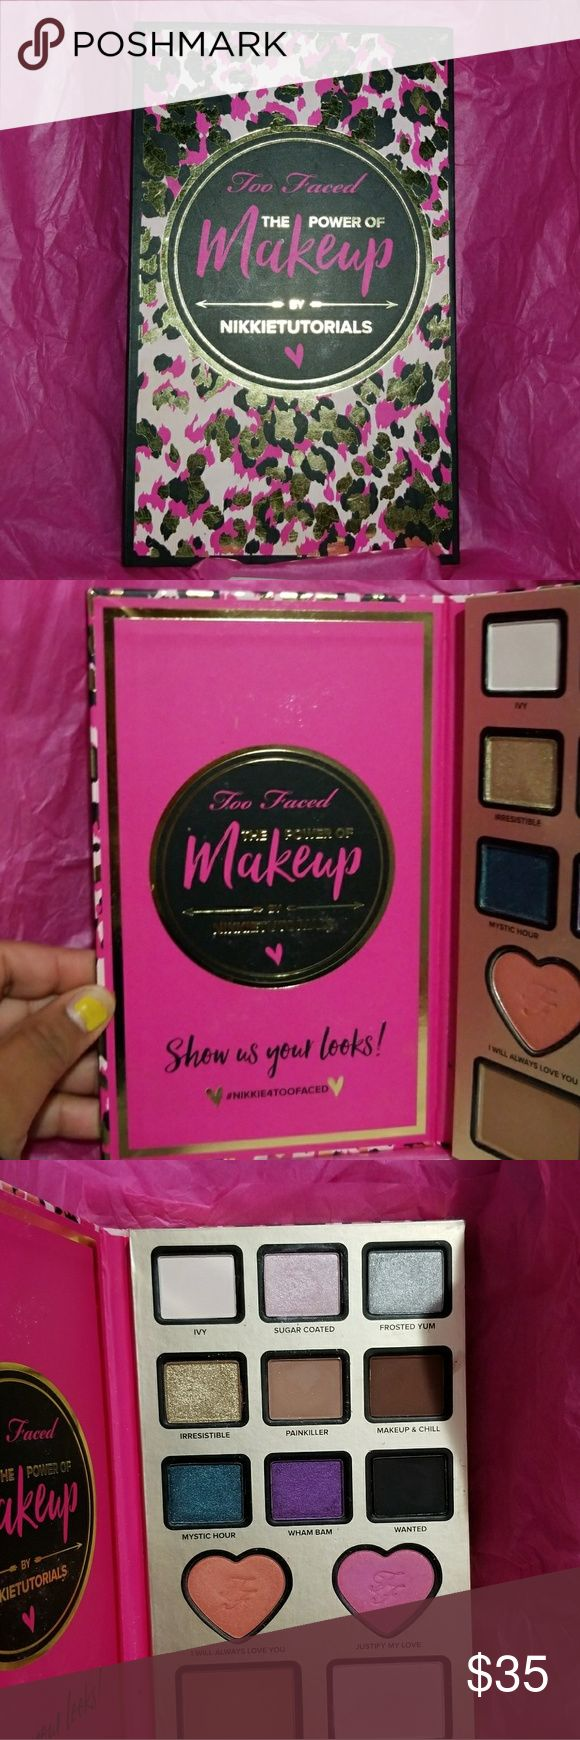 Nikkie Tutorials Power Of Makeup Palette Nikkie Tutorials Power Of Makeup Palette  All Colors Barely Used About 3 Times  Authentic Purchased From Ulta  Does Not Come With The Glitter or Glue  No Trades Too Faced Makeup Eyeshadow